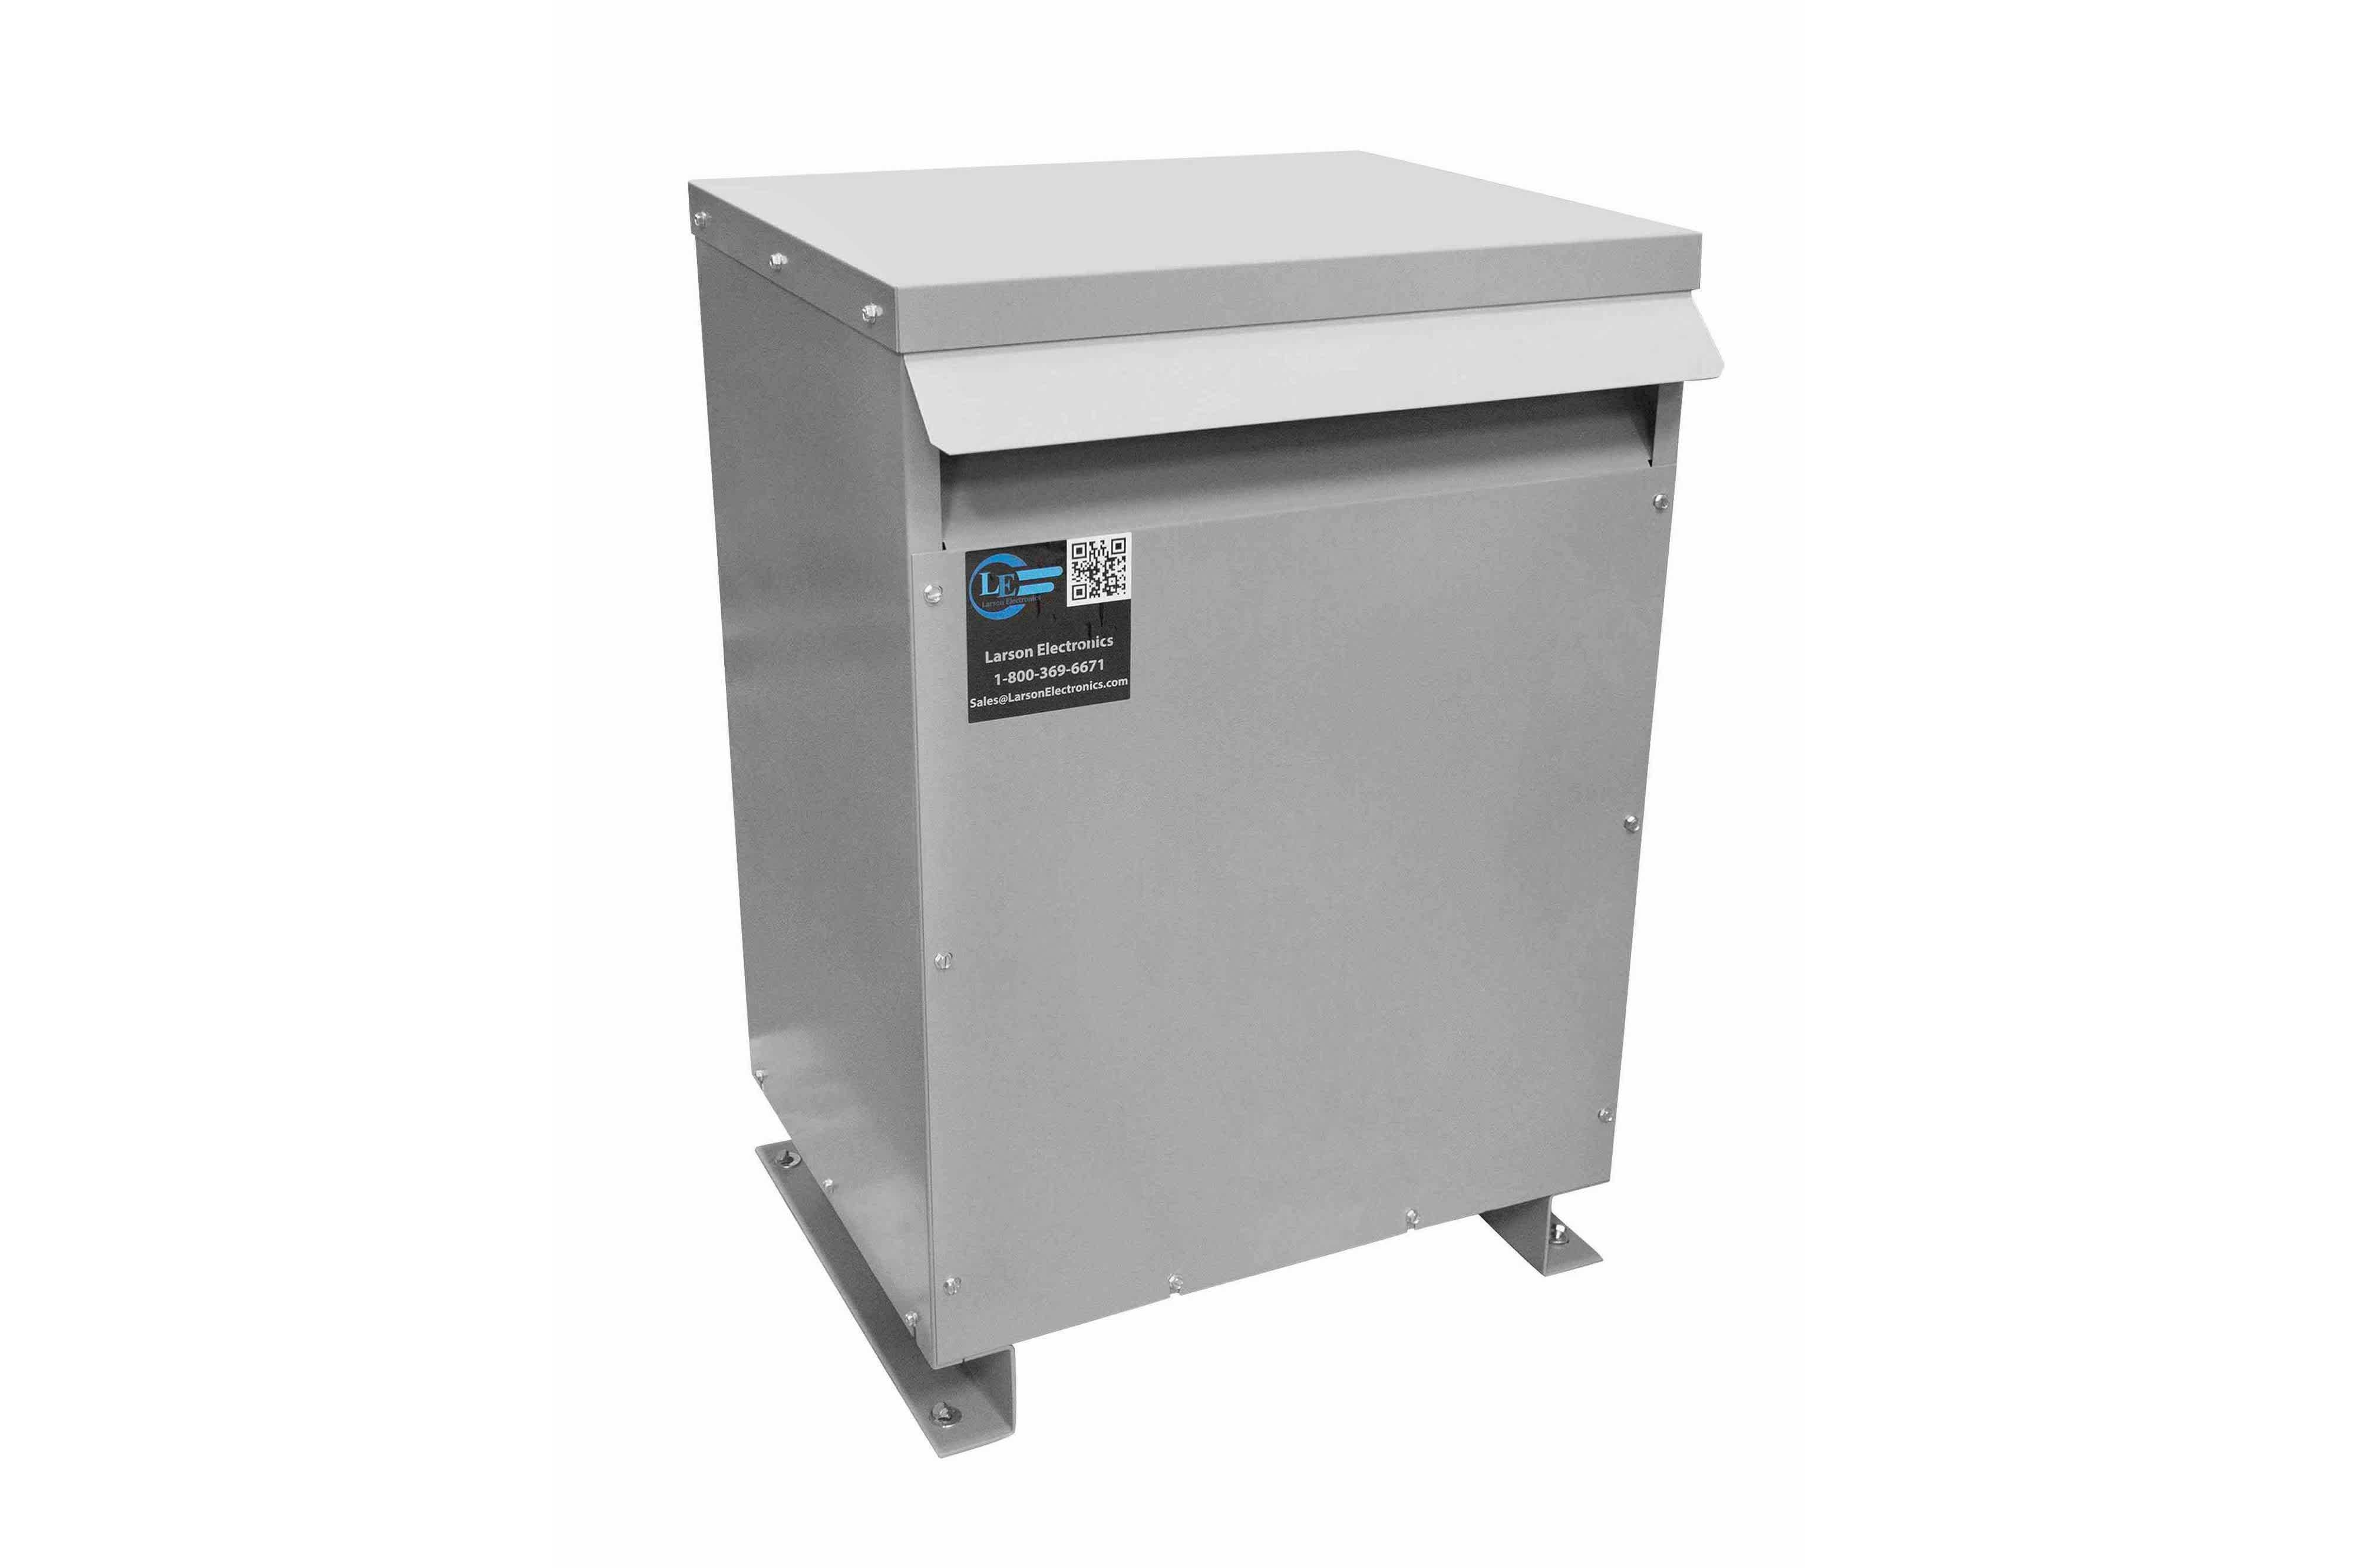 400 kVA 3PH Isolation Transformer, 600V Wye Primary, 400V Delta Secondary, N3R, Ventilated, 60 Hz